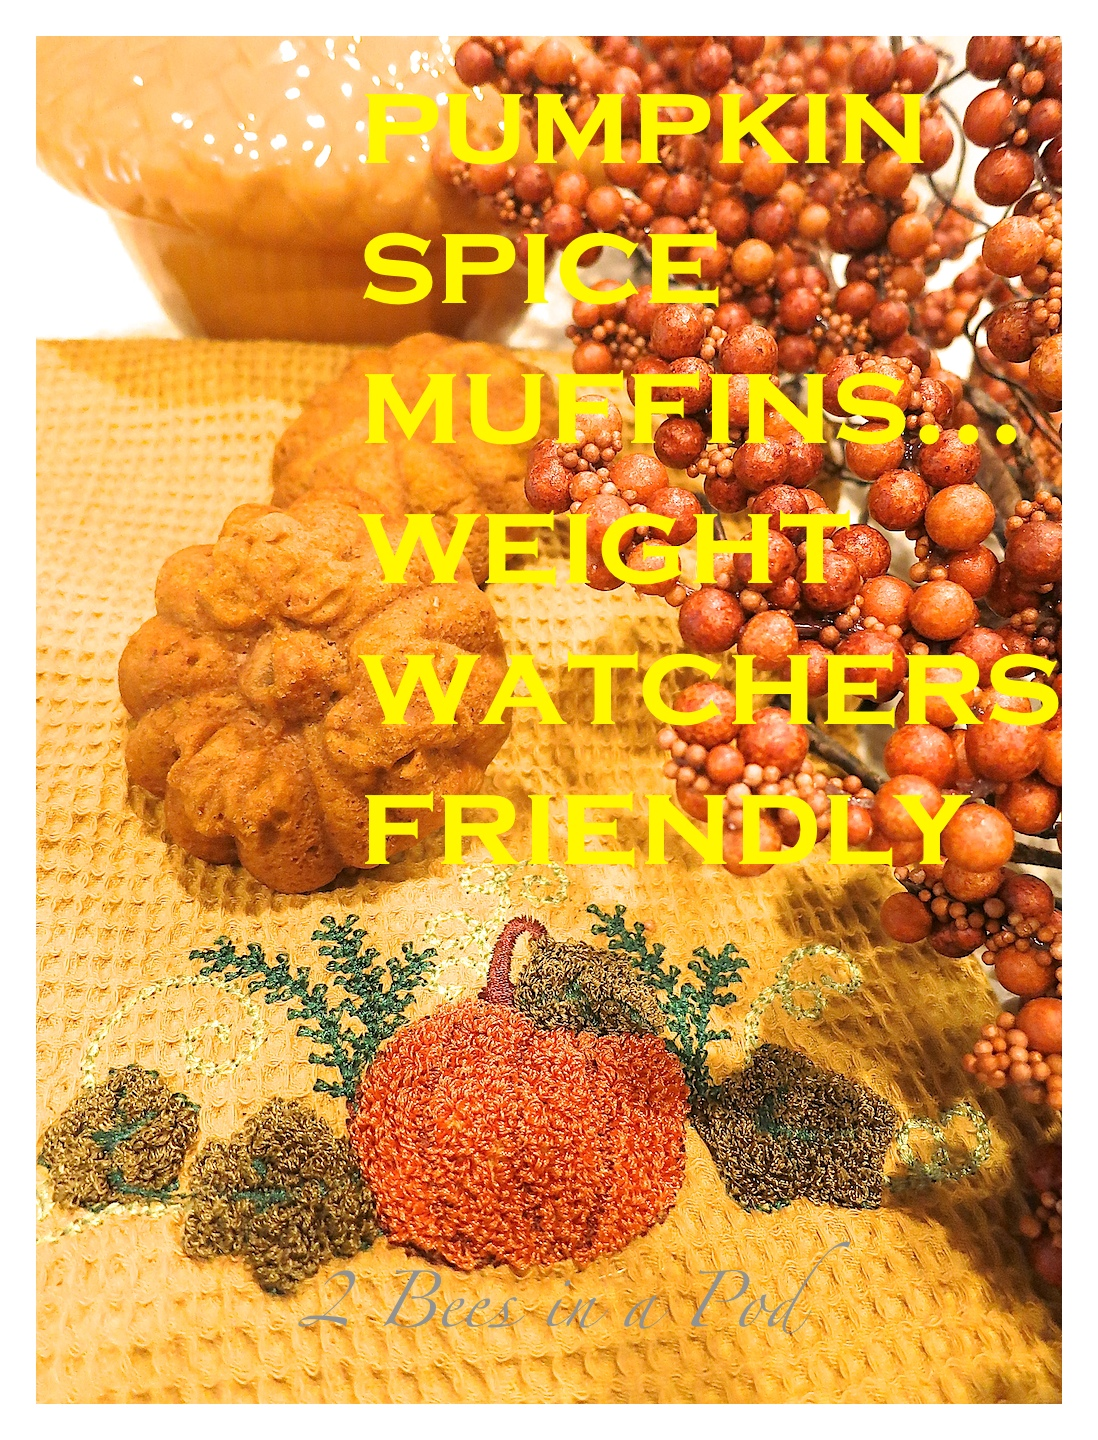 Great recipe for Weight Watchers Pumpkin Spiced Muffins. Yummy goodness without the points or extra calories!